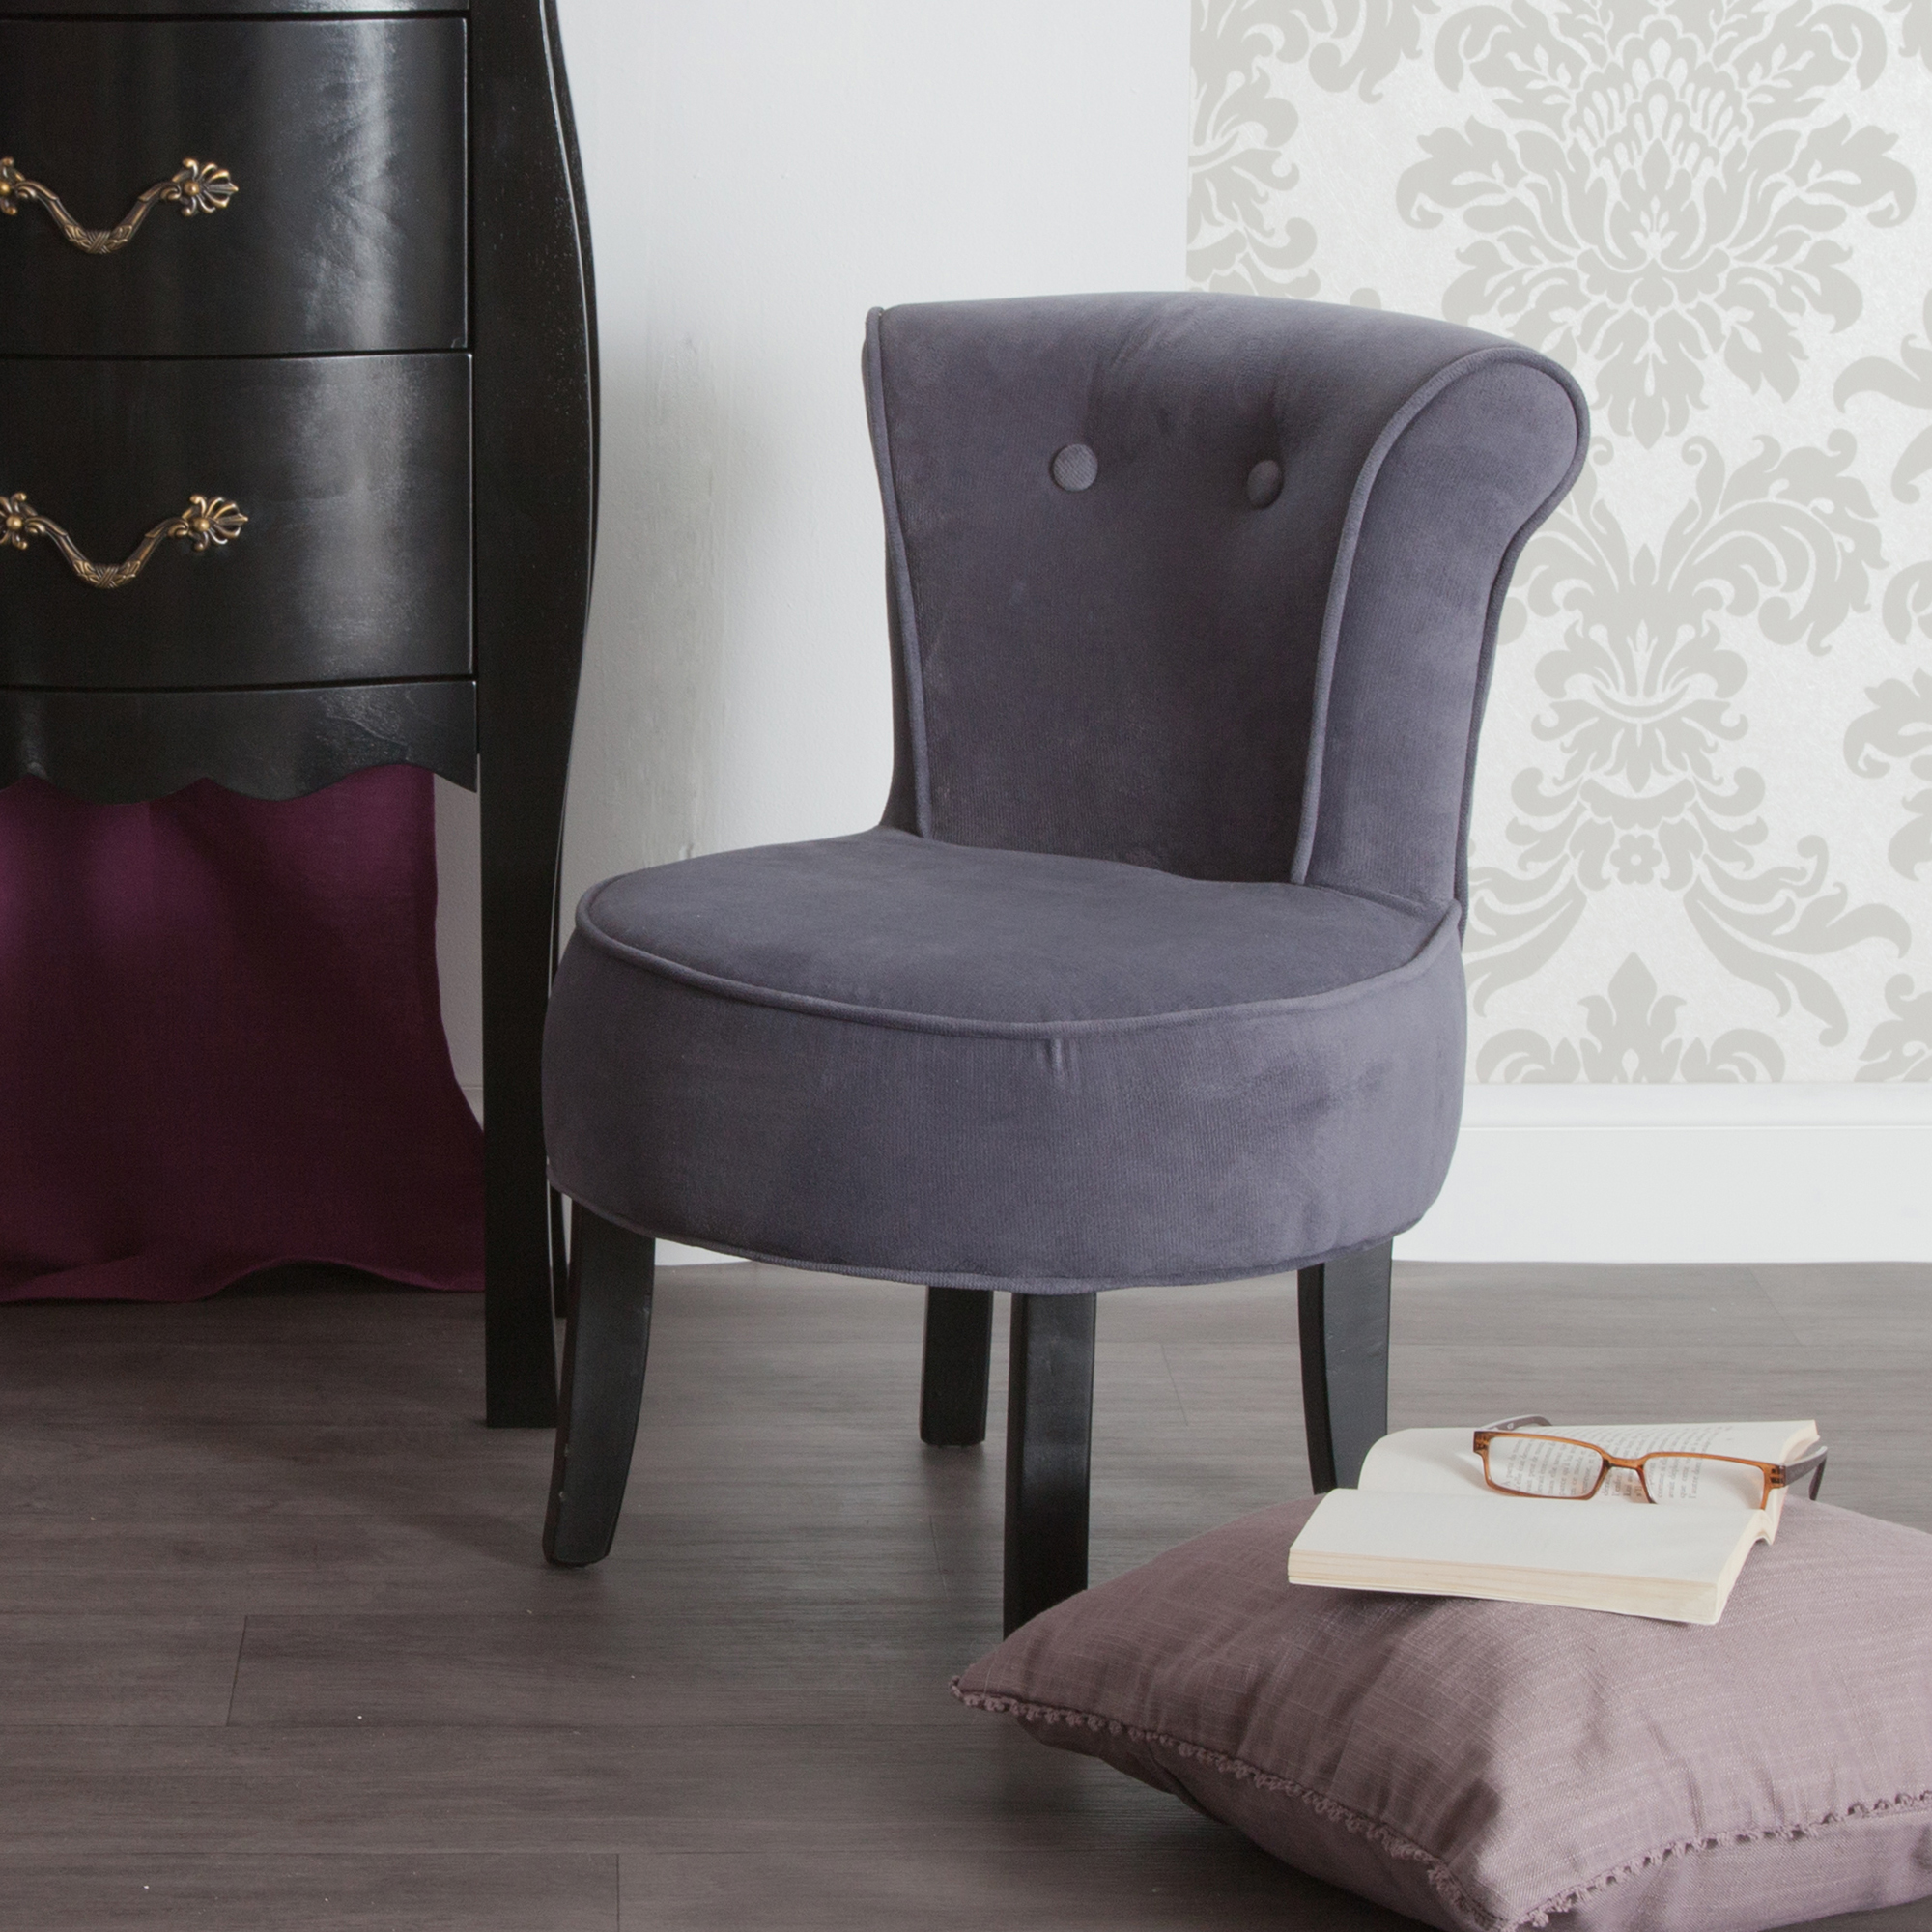 solde fauteuil crapaud id es de d coration int rieure french decor. Black Bedroom Furniture Sets. Home Design Ideas